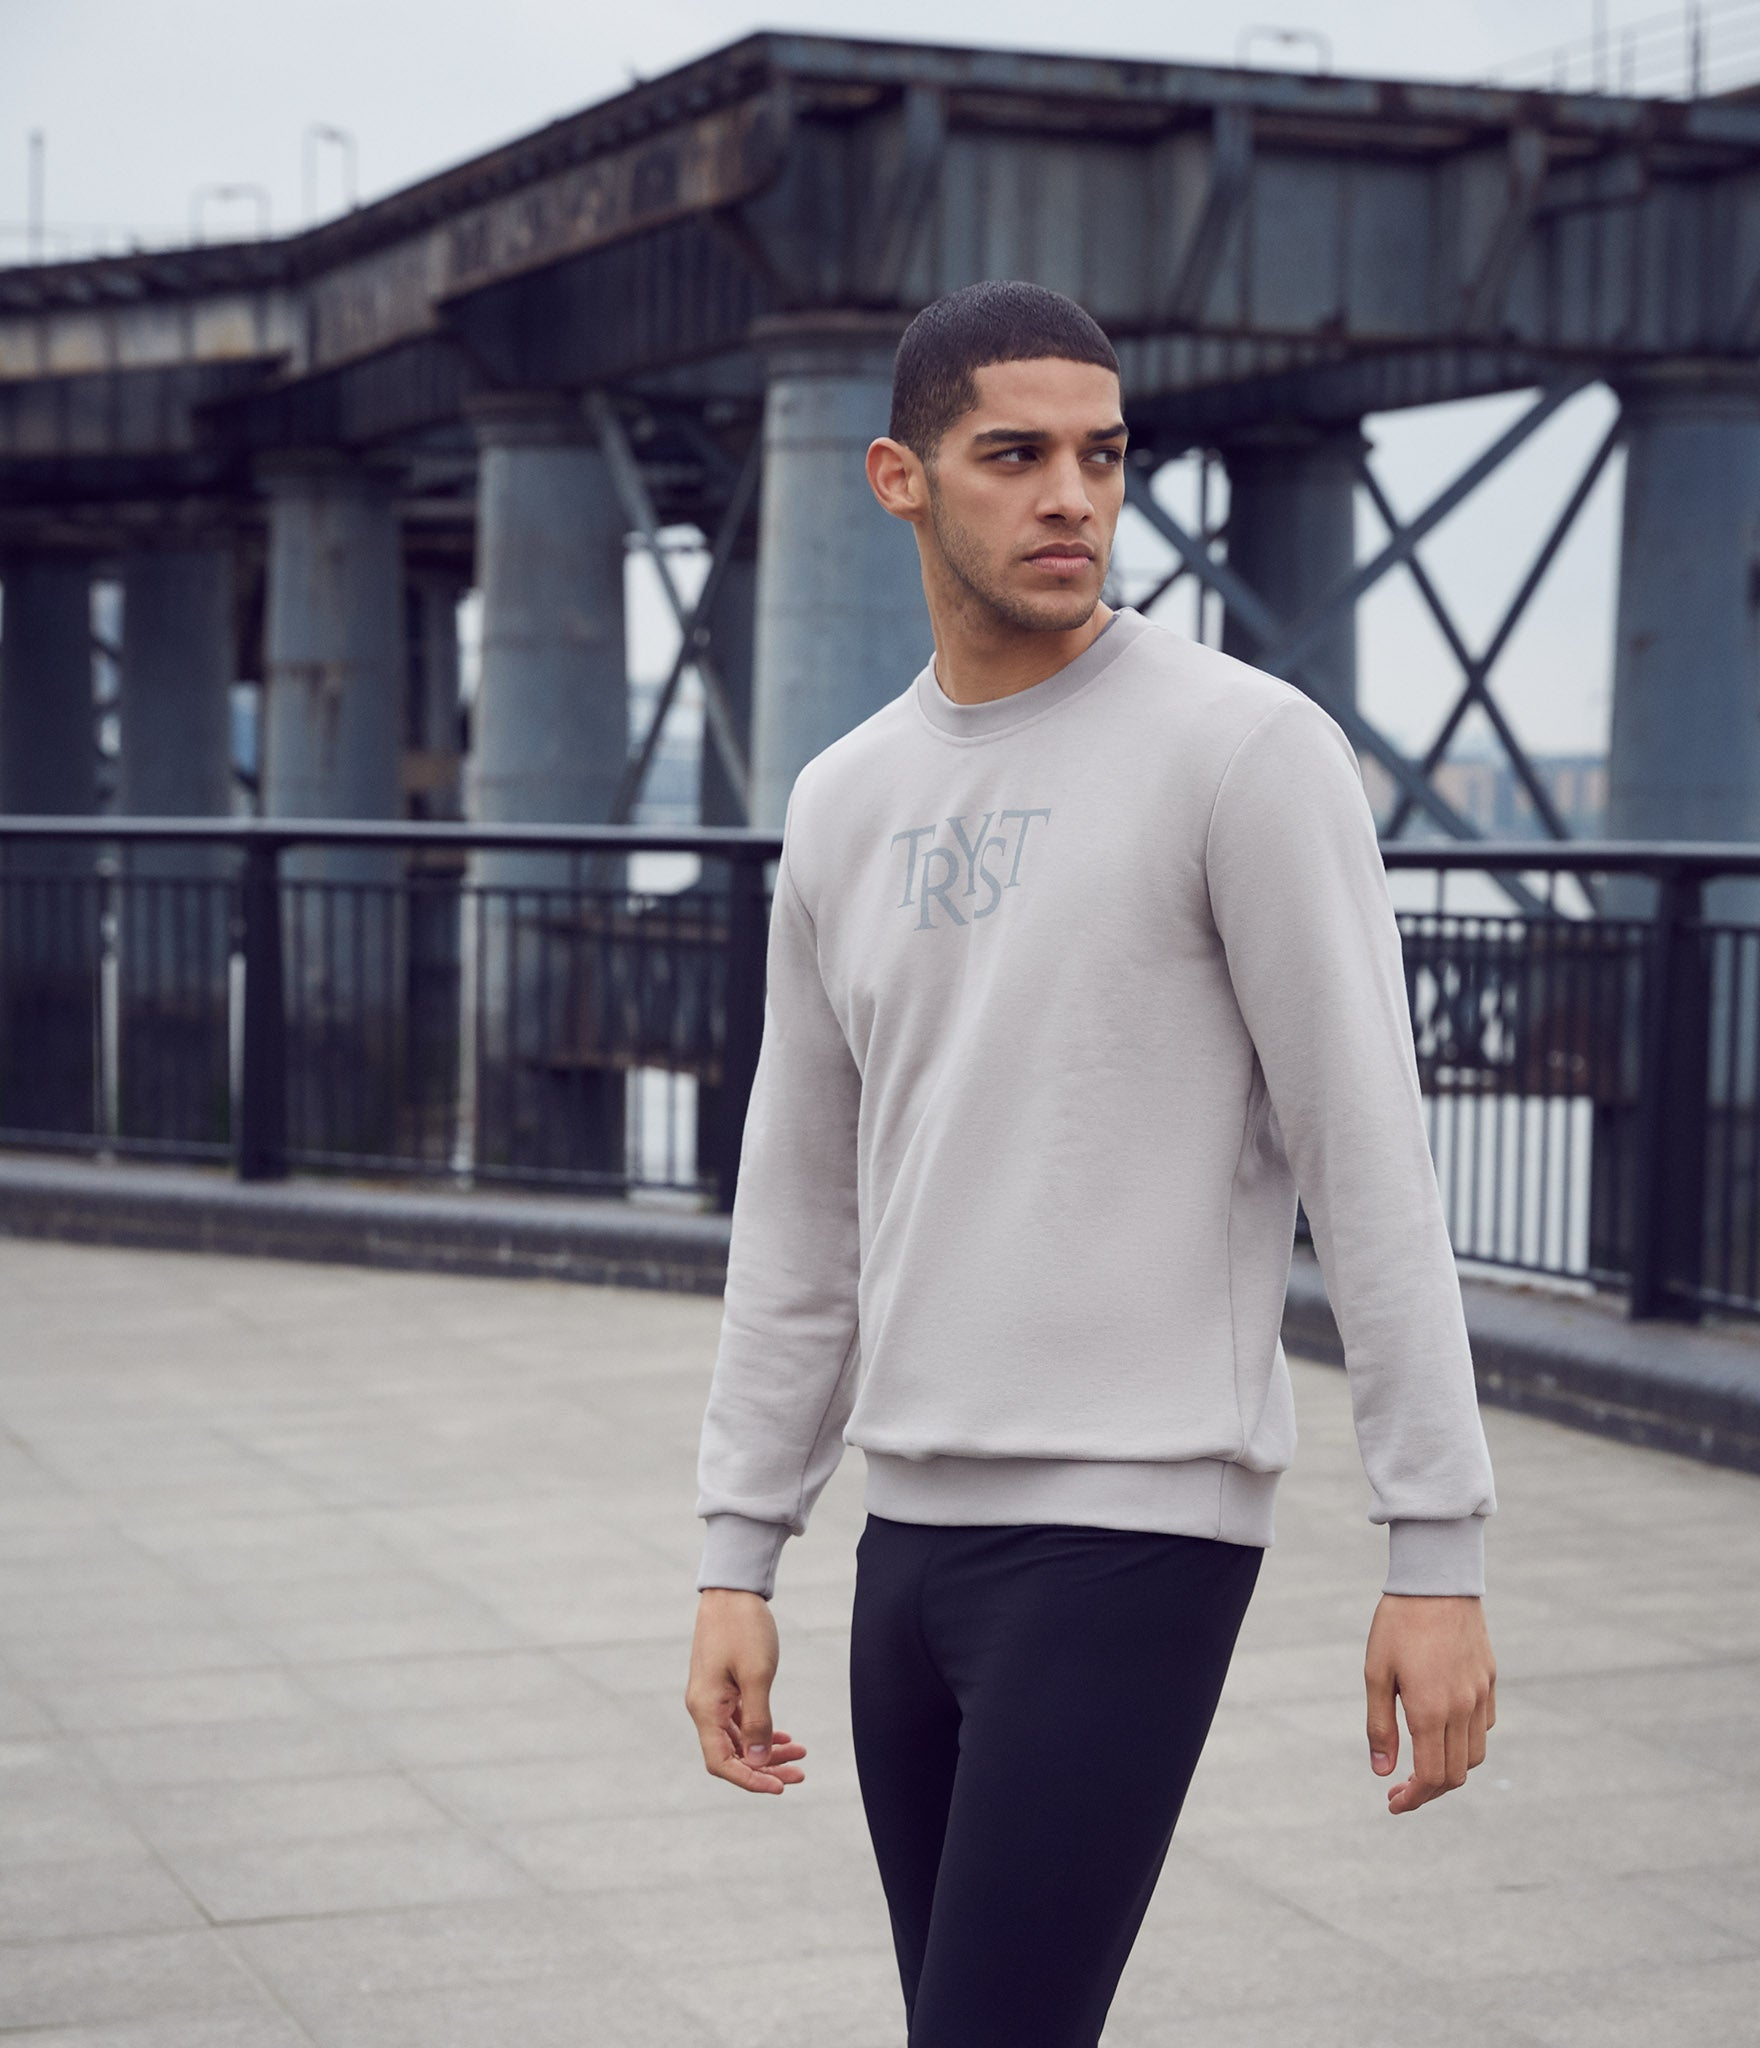 This classic sweatshirt is great for chilly mornings. Tryst Stockholm is a Scandinavian clothing brand for an active urban lifestyle. Tryst means any meeting of special significance, whether public, personal or private, including those all-important meetings with oneself.